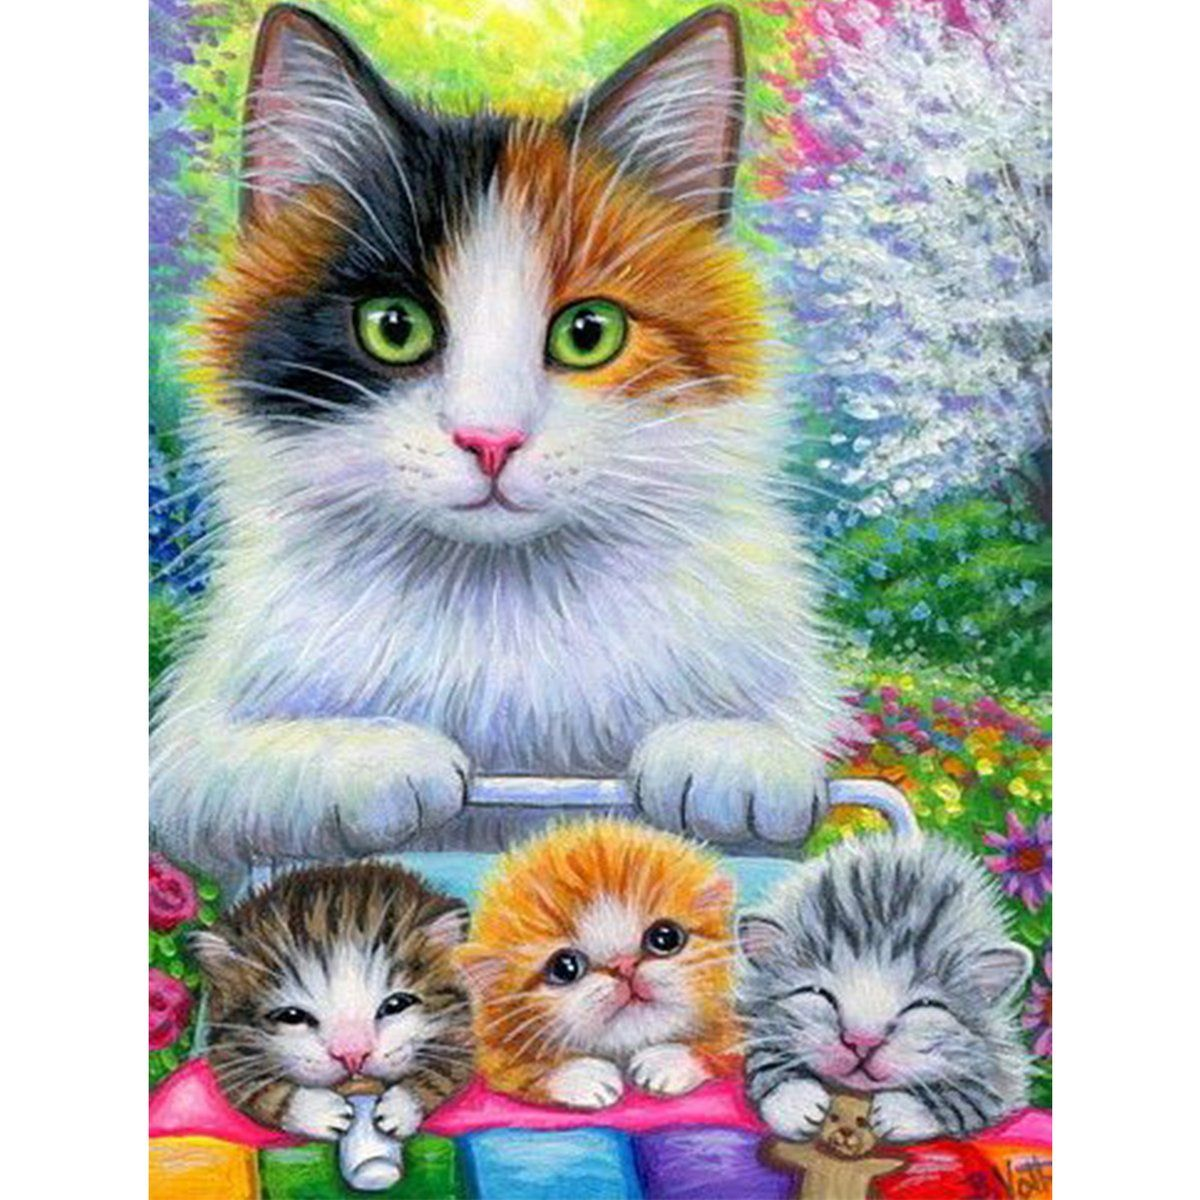 5d Diamond Painting A Cat Paint With Diamonds Art Crystal Craft Decor In 2020 Cat Painting Cat Art Cats And Kittens